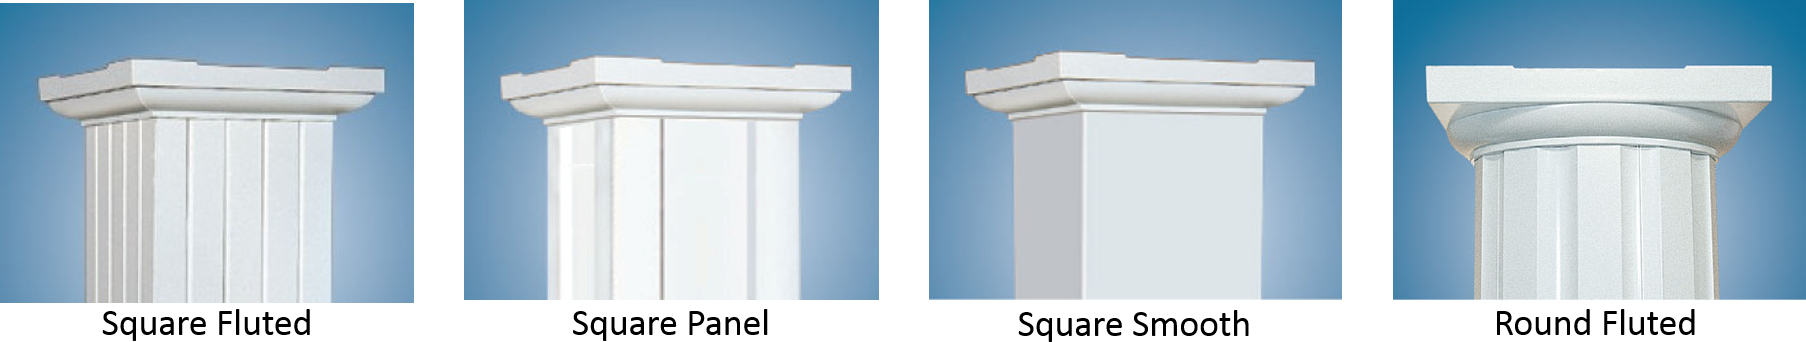 Four different aluminum column profiles